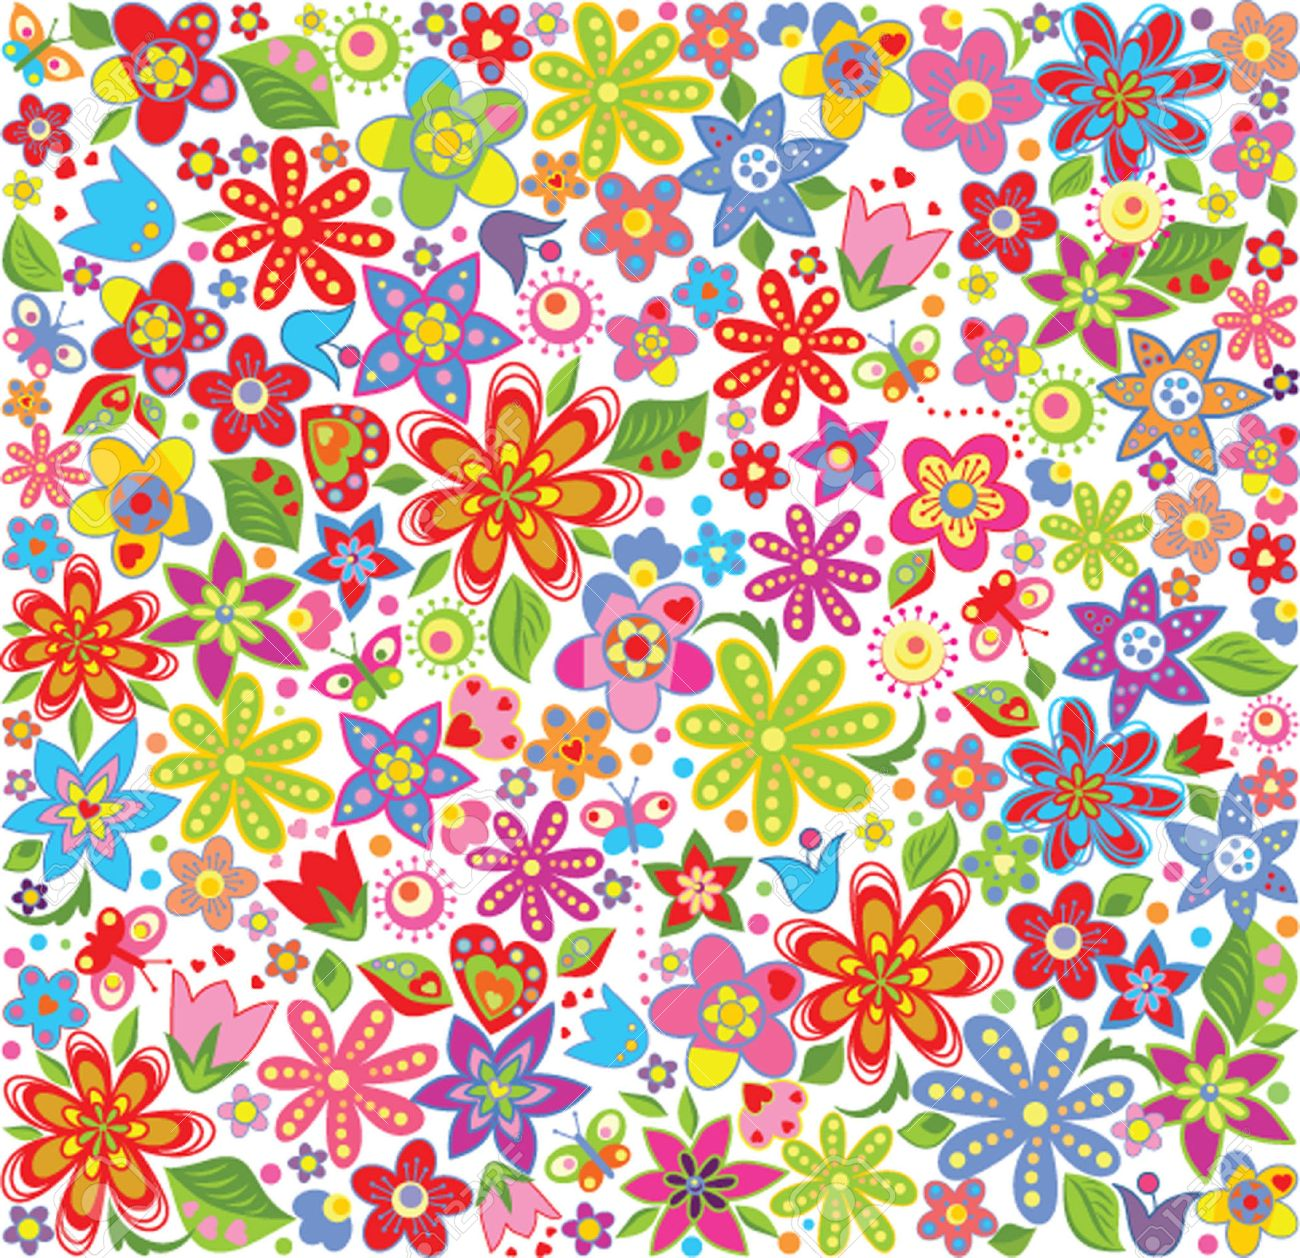 Spring Floral Wallpaper Royalty Free Cliparts Vectors And Stock